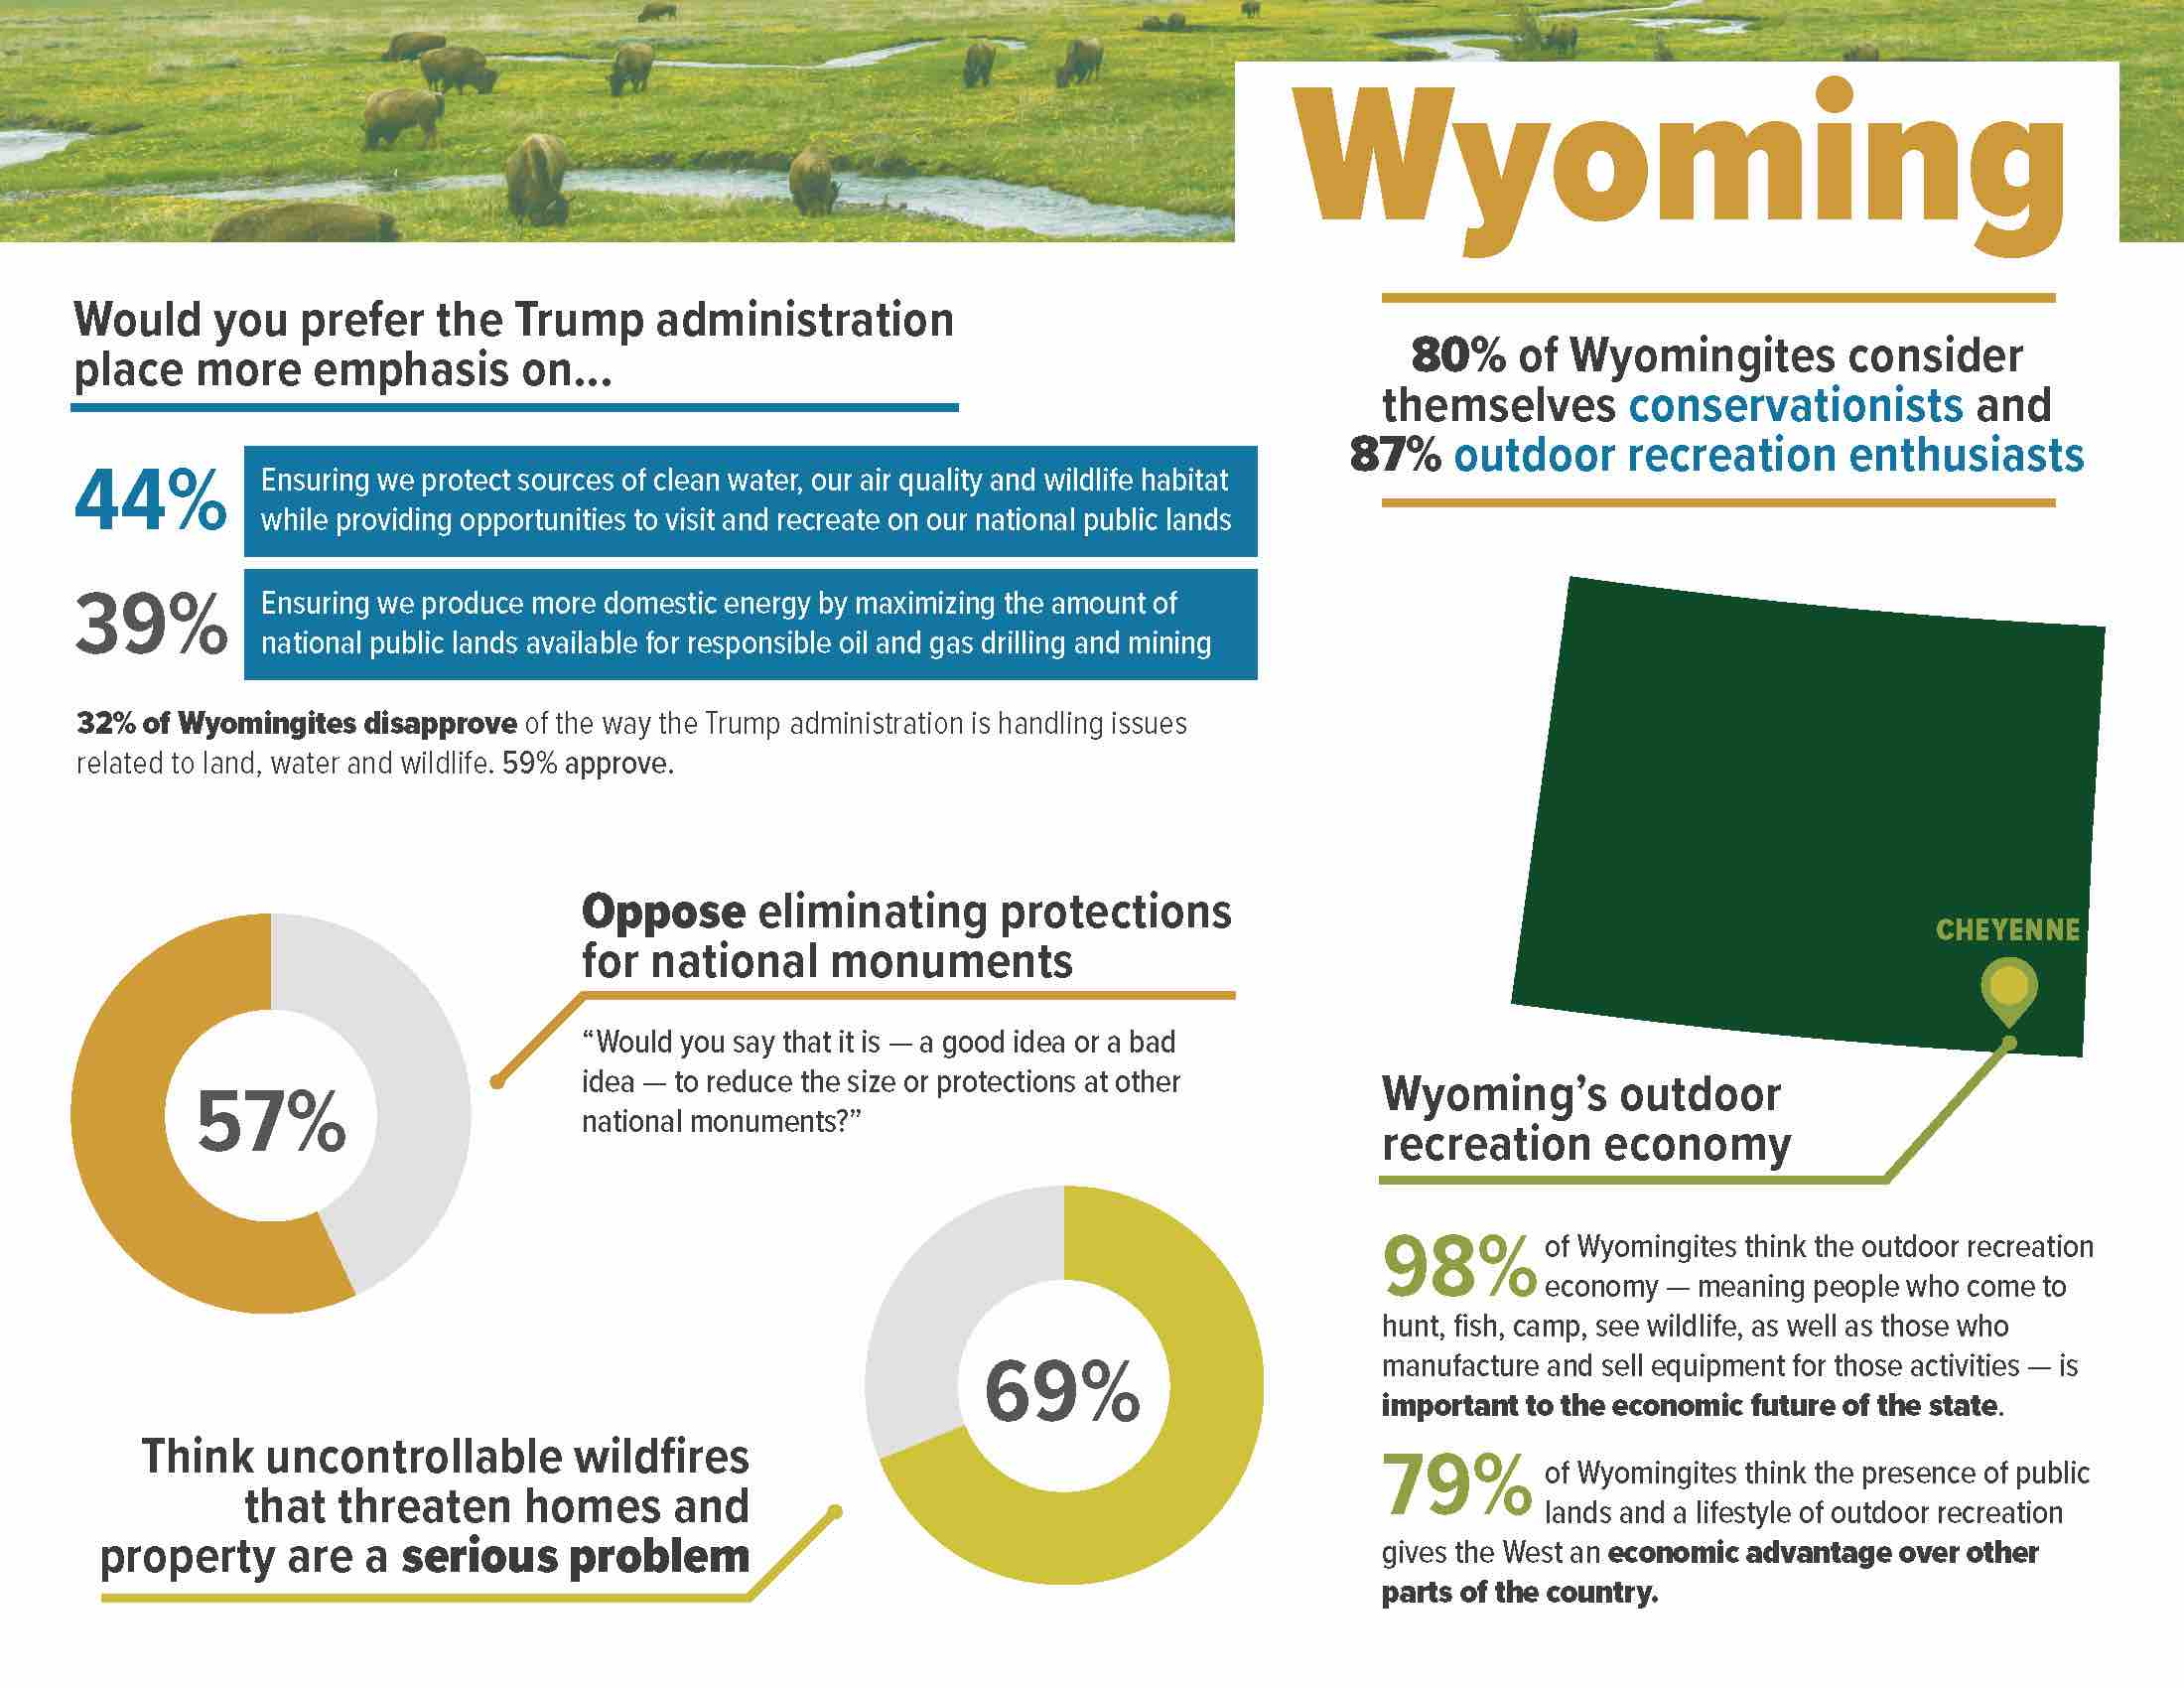 ConservationintheWest_2018__StateFactSheet_Wyoming